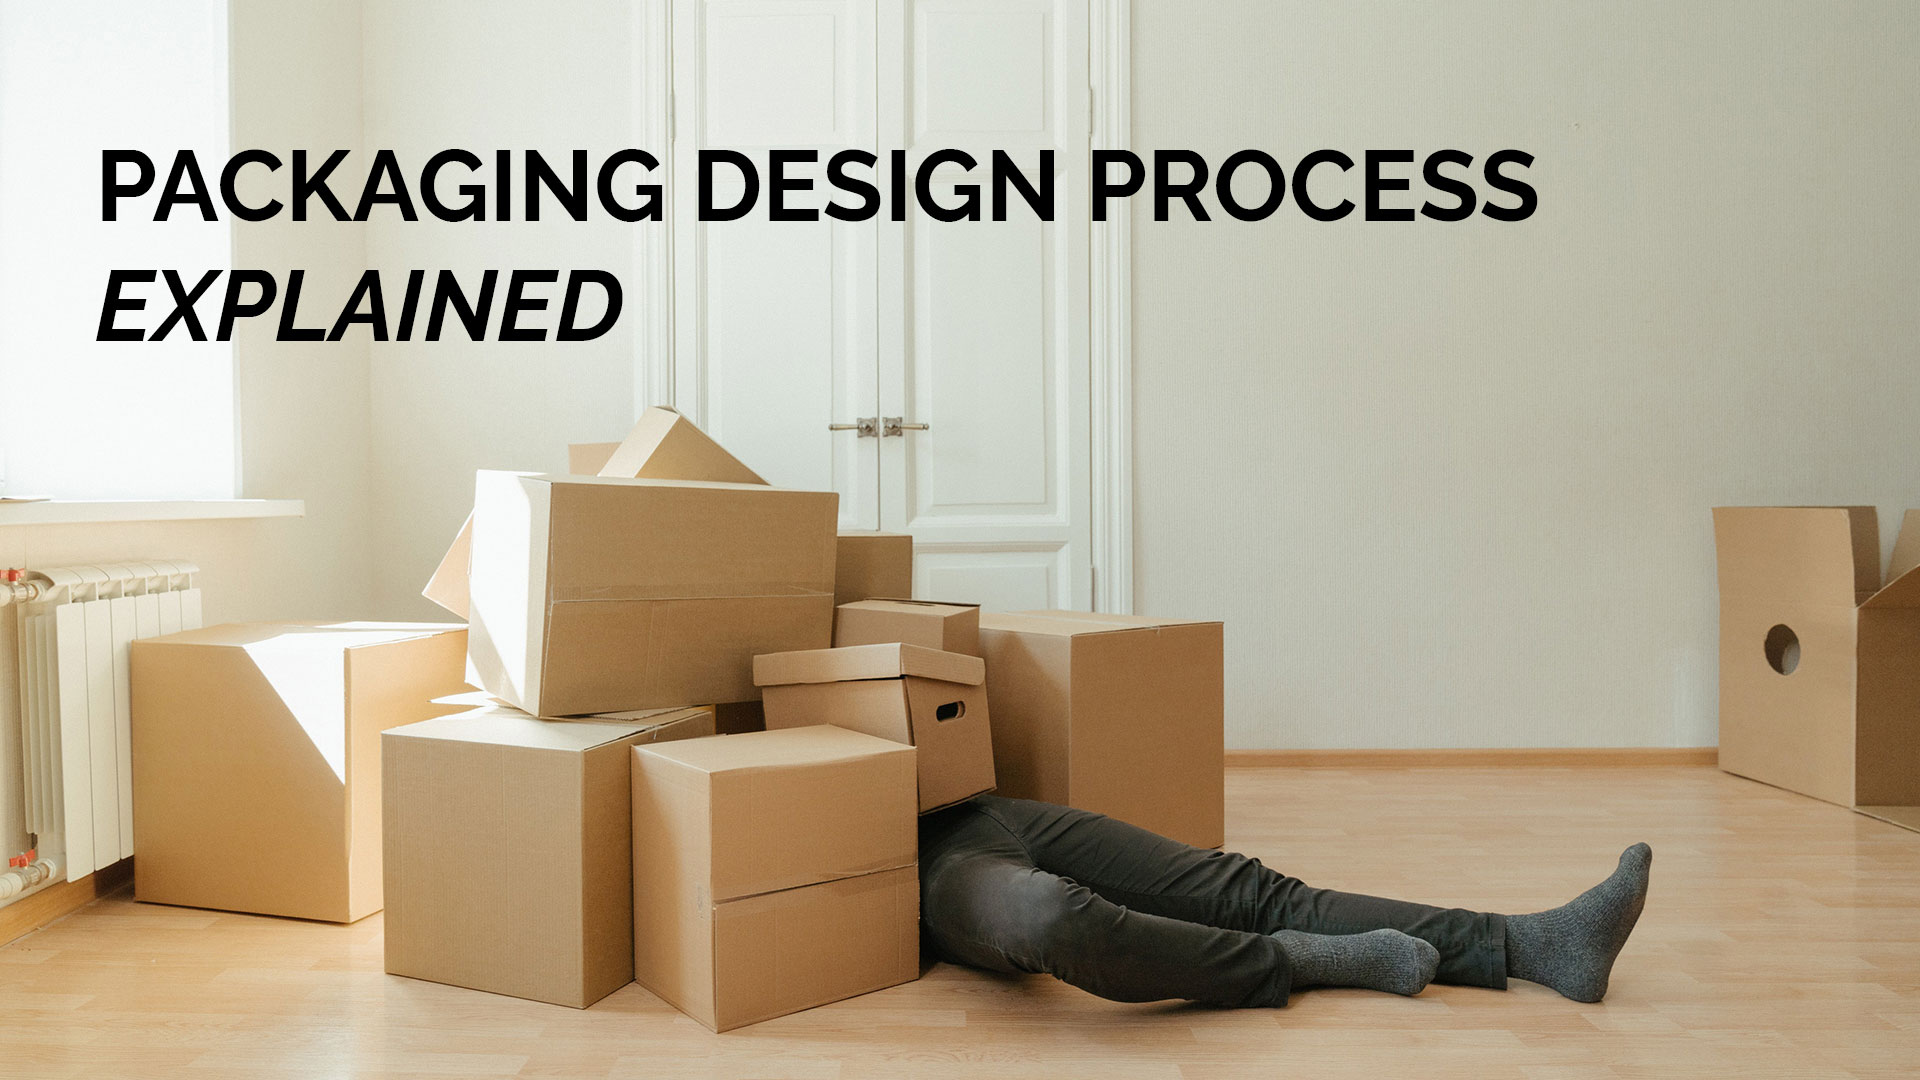 packaging design banner person and boxes